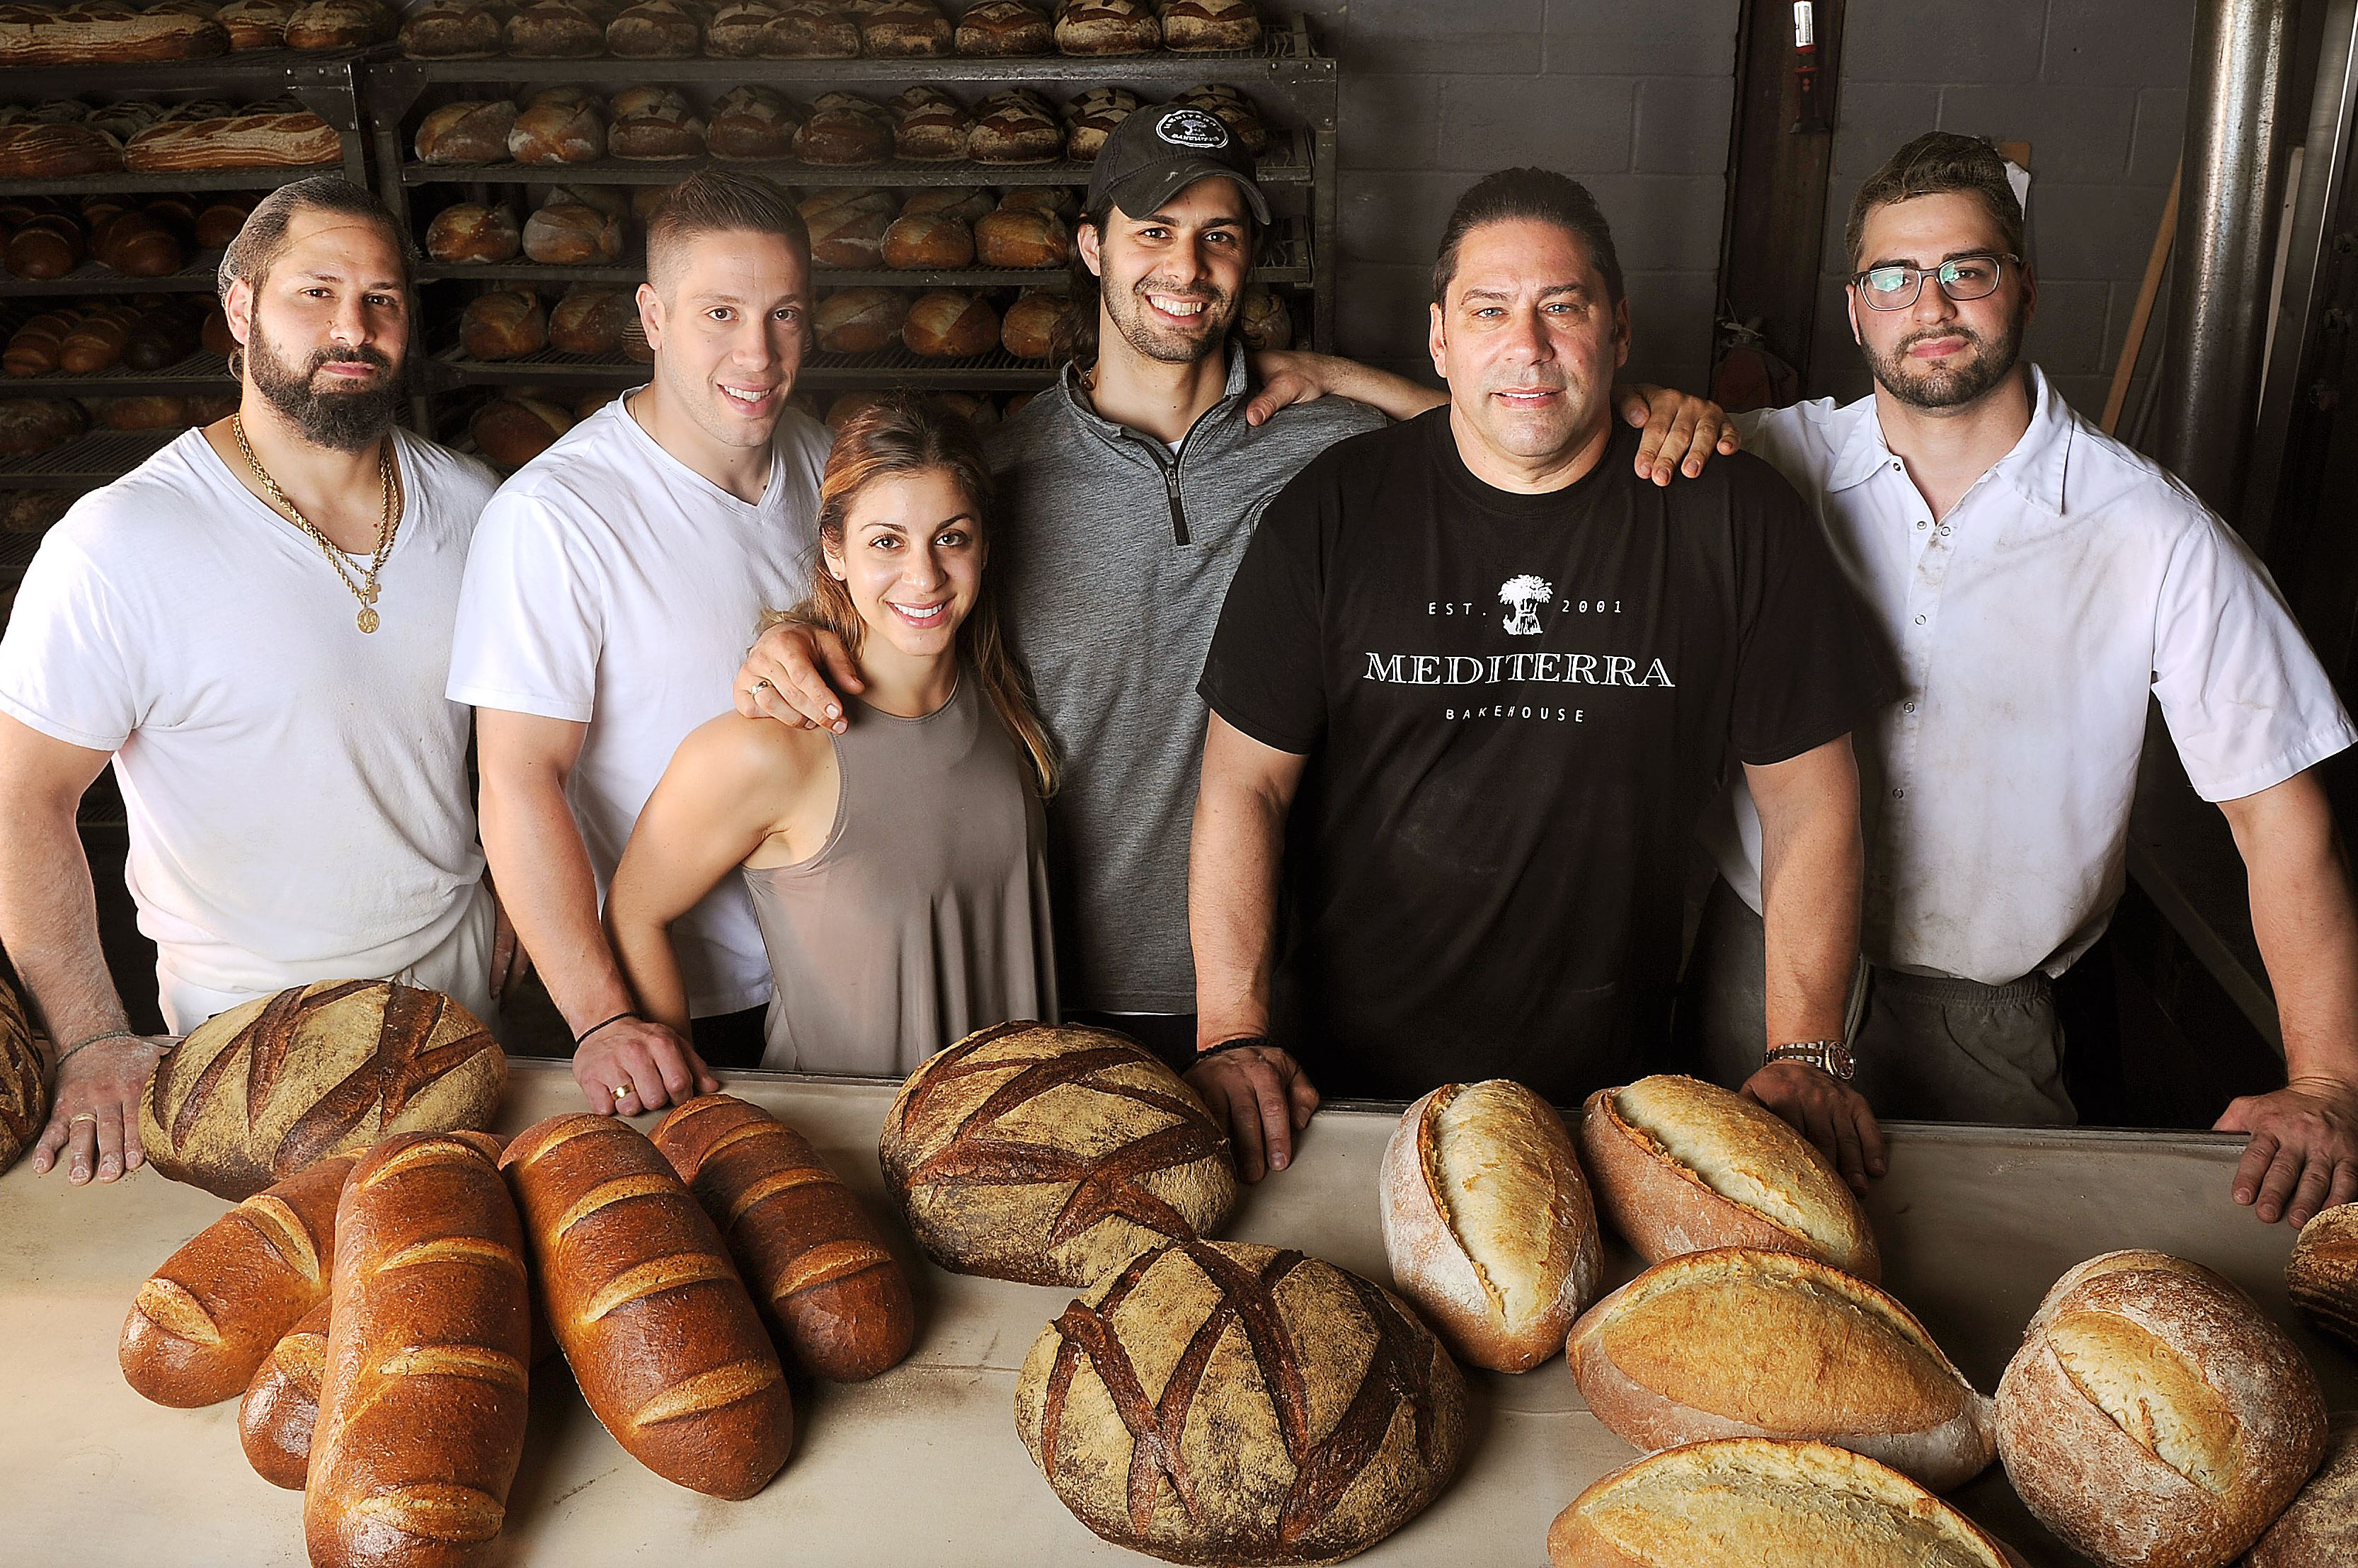 20170601ng-MediterraBread6-5 A portrait of the Ambeliotis family: from left, Anthony, 31, production manager; son-in-law Garrett McLean, sales manager; daughter Nicole, 28, administration; Mike, 33, business manager; Nick; and youngest son Nicholas, 26, head baker.